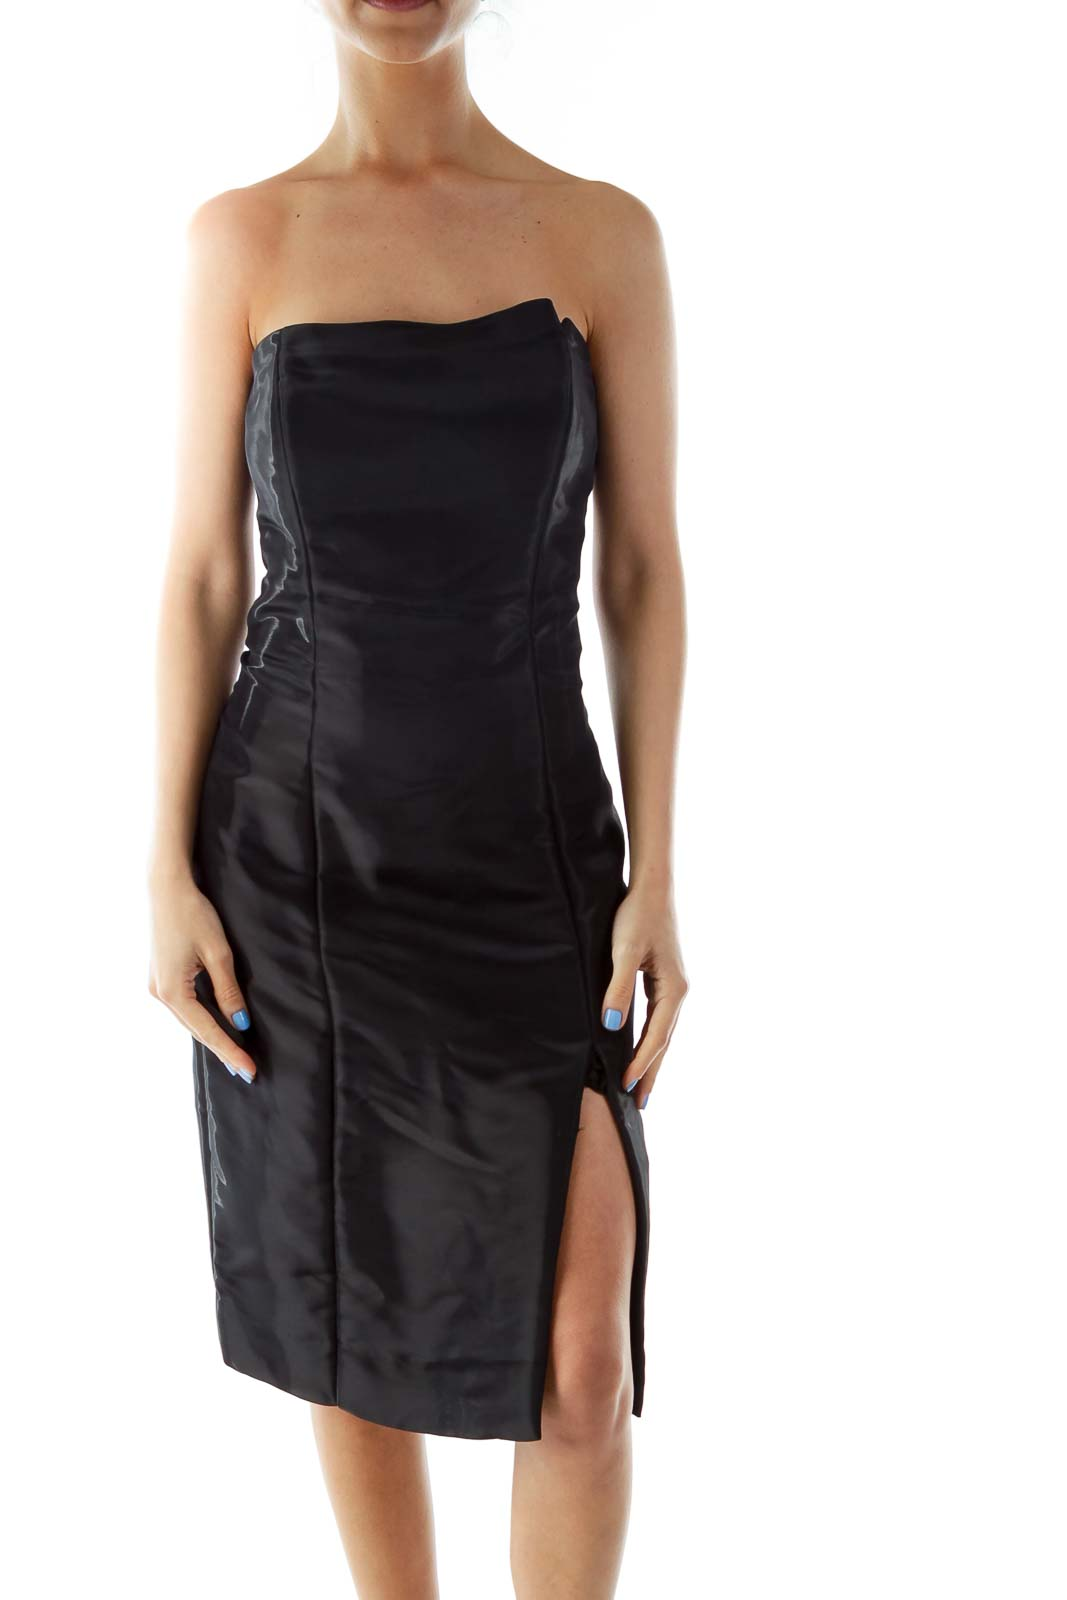 Black Metallic Strapless Cocktail Dress